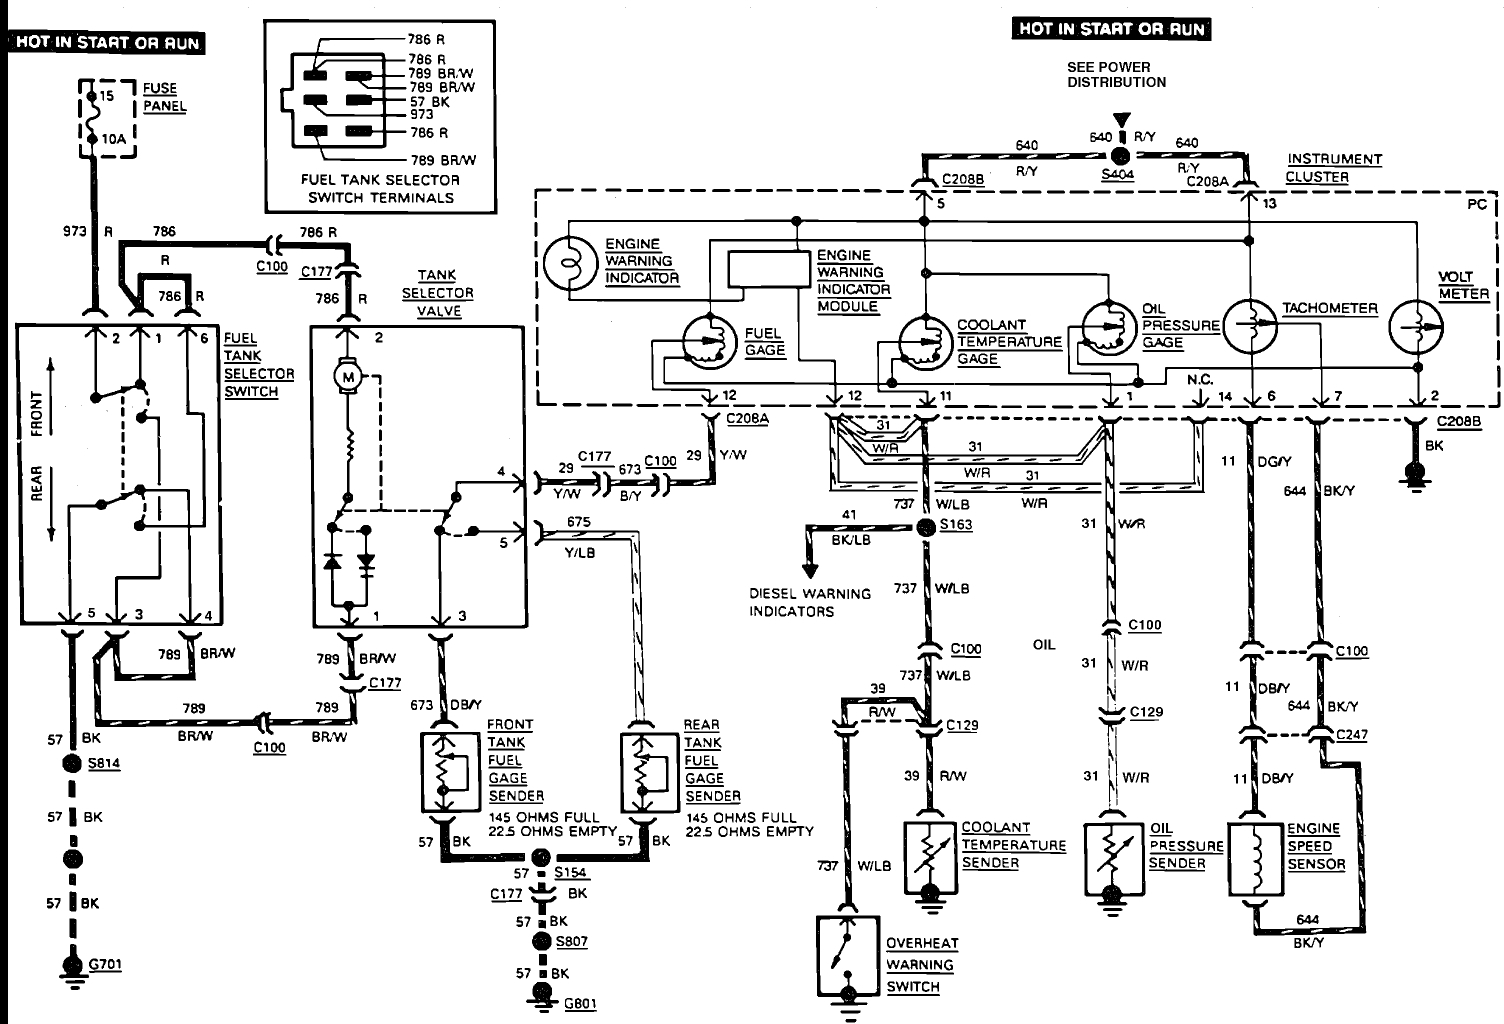 1984 Ford L9000 Wiring Diagram Full Hd Version Wiring Diagram Pape Nettoyagevertical Fr